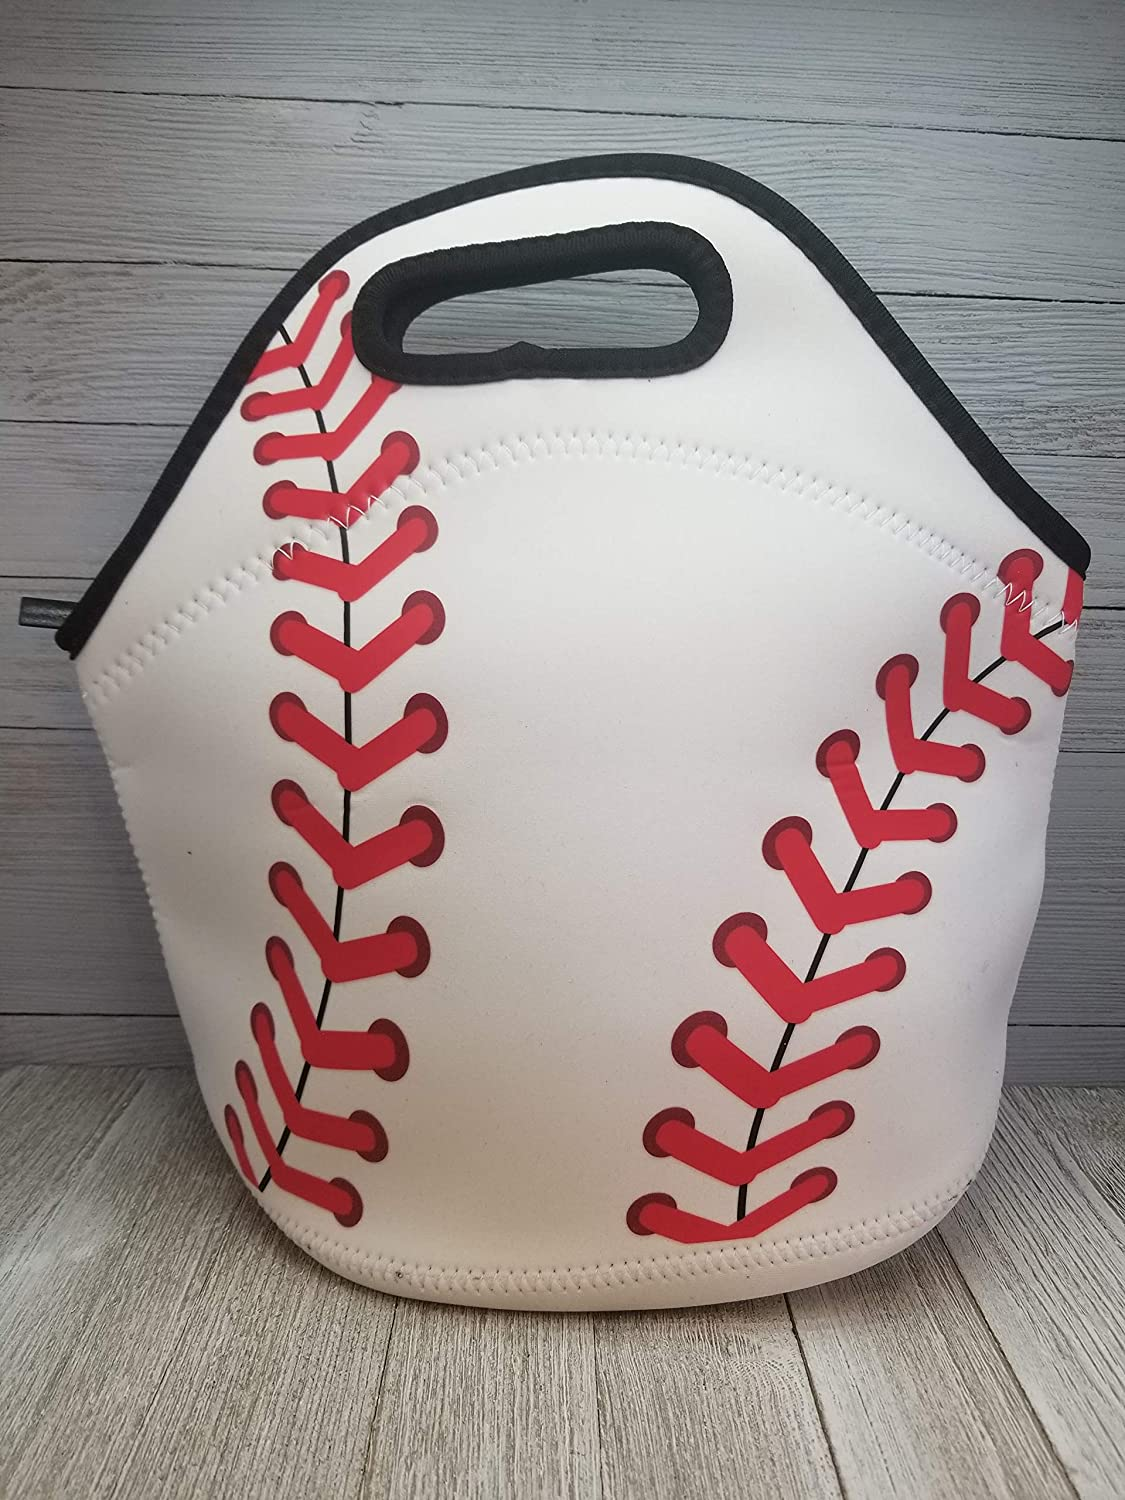 Baseball Neoprene Lunch Tote. Reusable, Insulated, Soft Sided Lunch Bag. Washable.